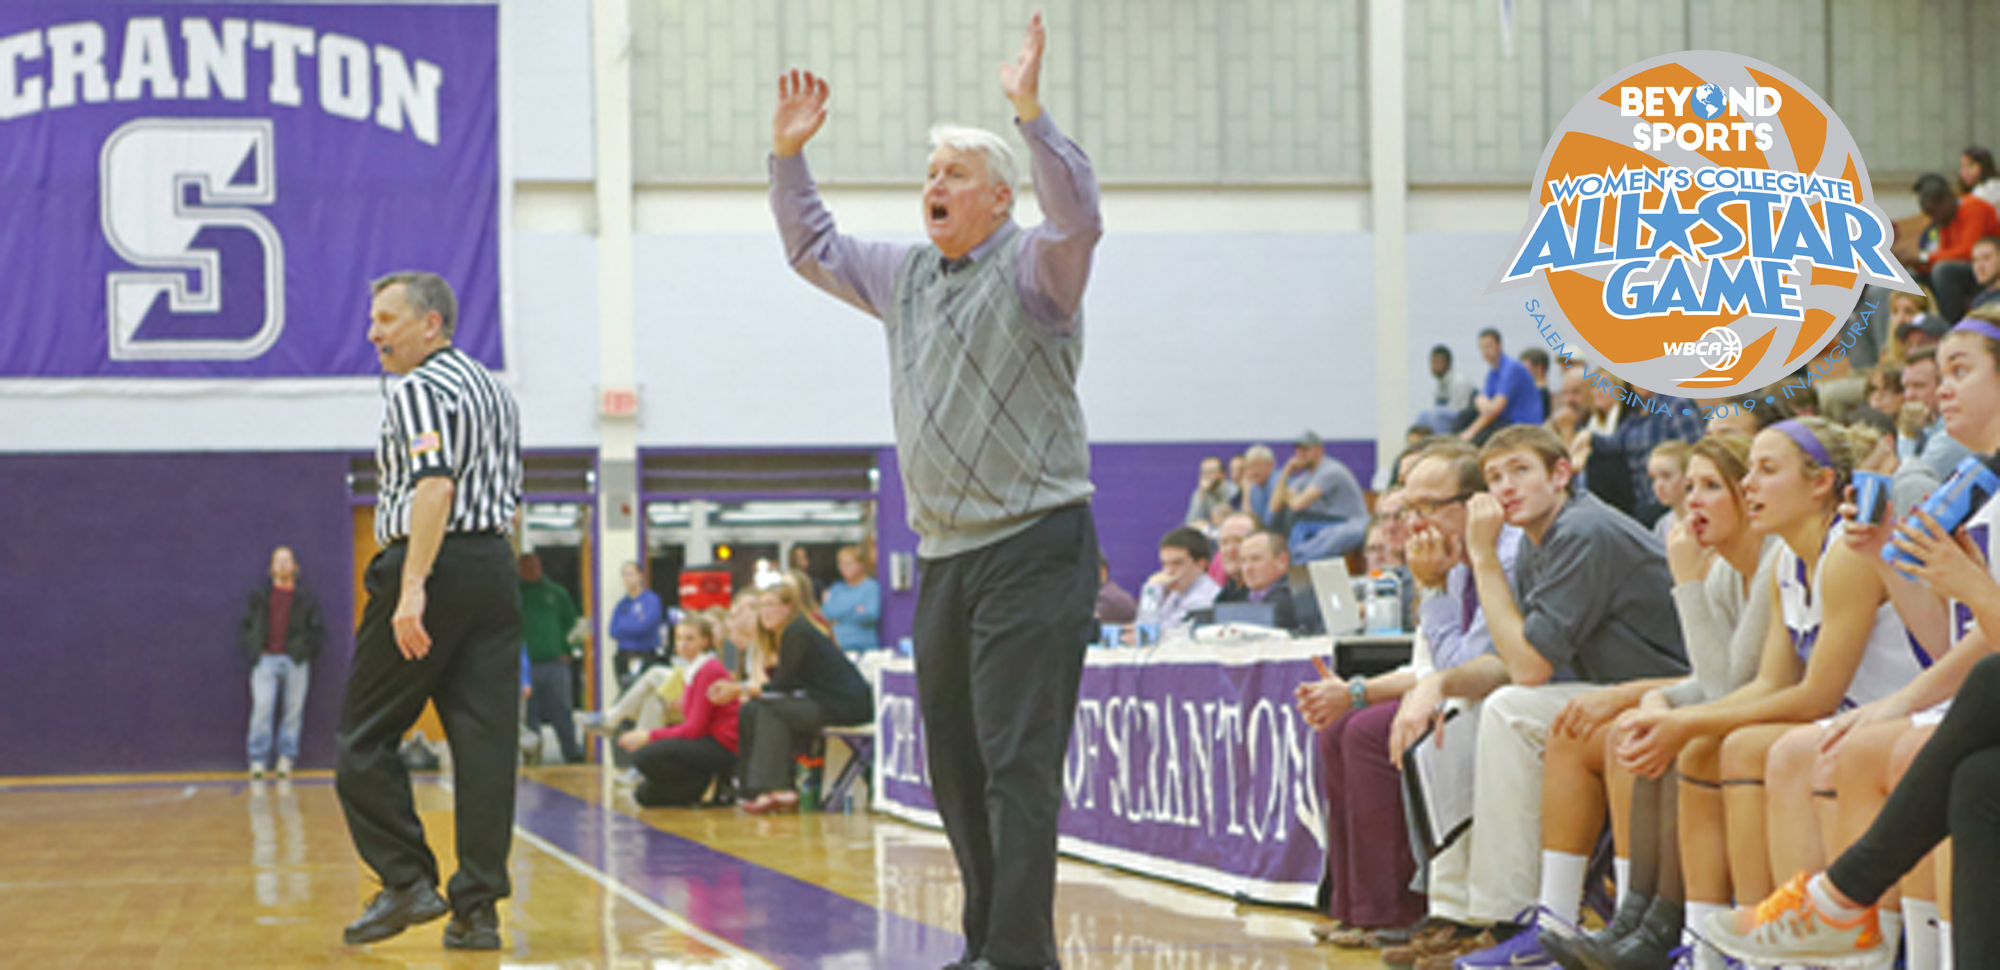 Former Lady Royals' coach Mike Strong will coach a team at Saturday's Beyond Sports Women's Collegiate All-Star Game.